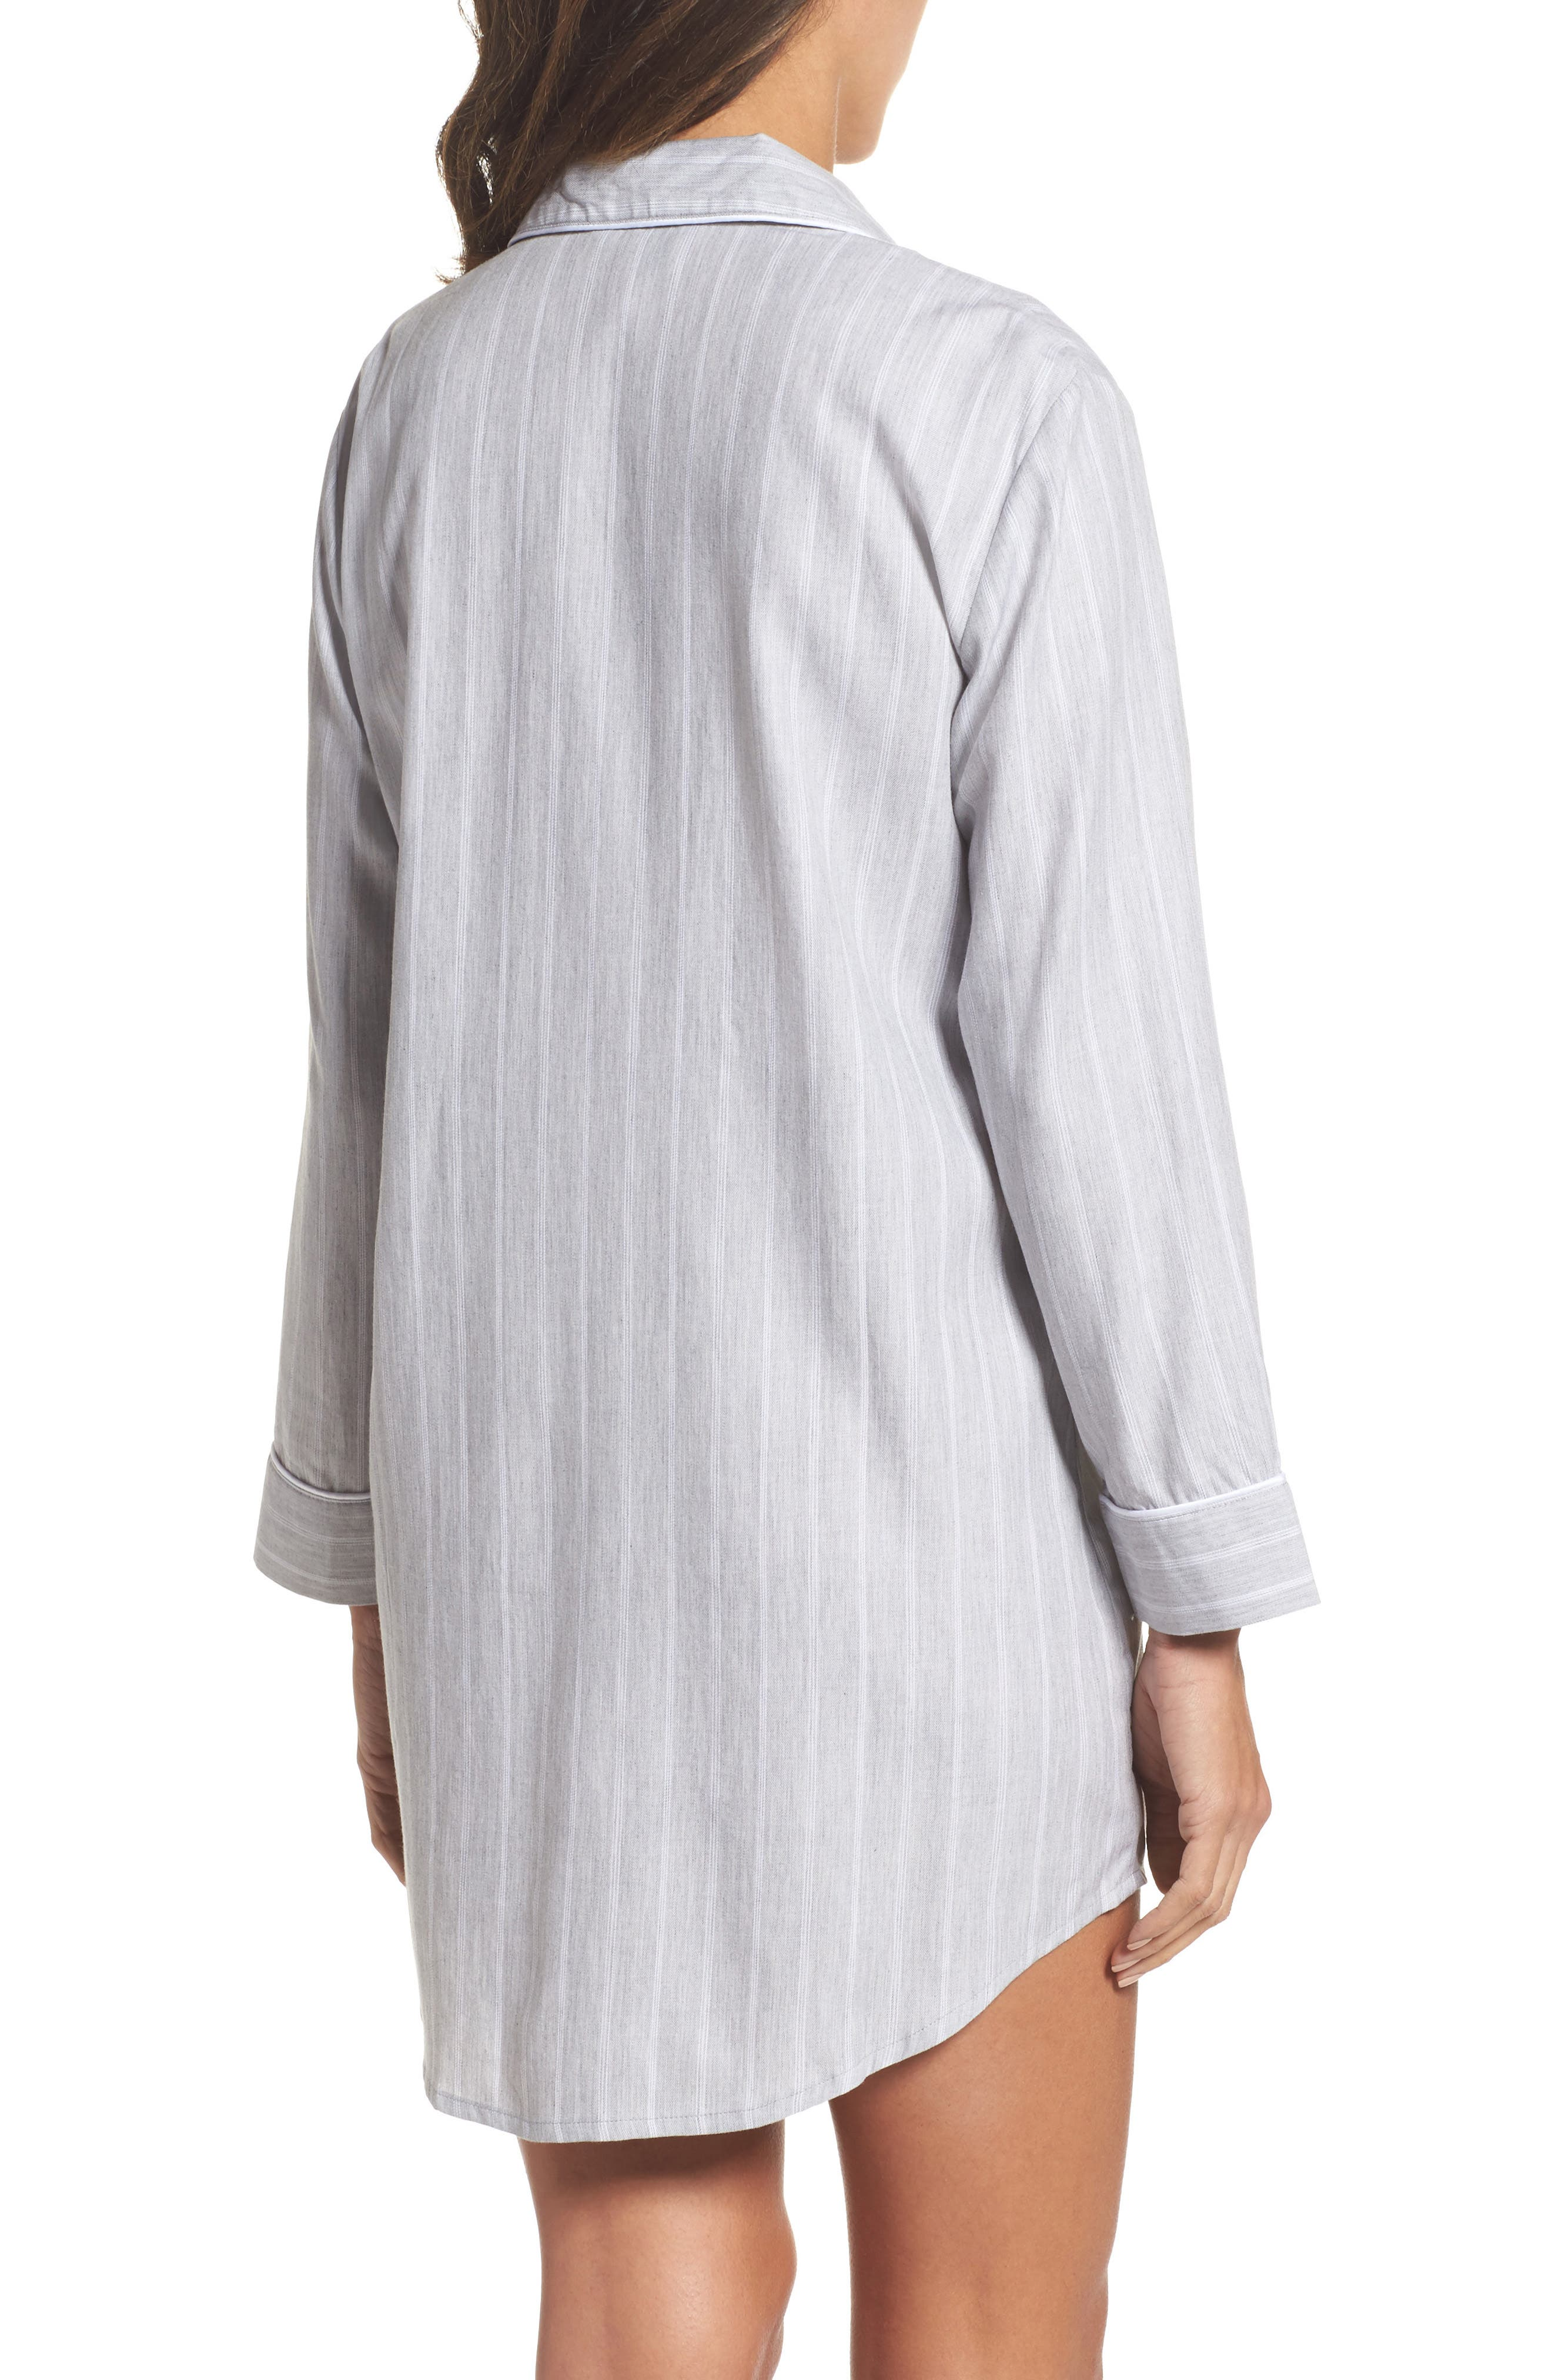 Notch Collar Sleep Shirt,                             Alternate thumbnail 2, color,                             060